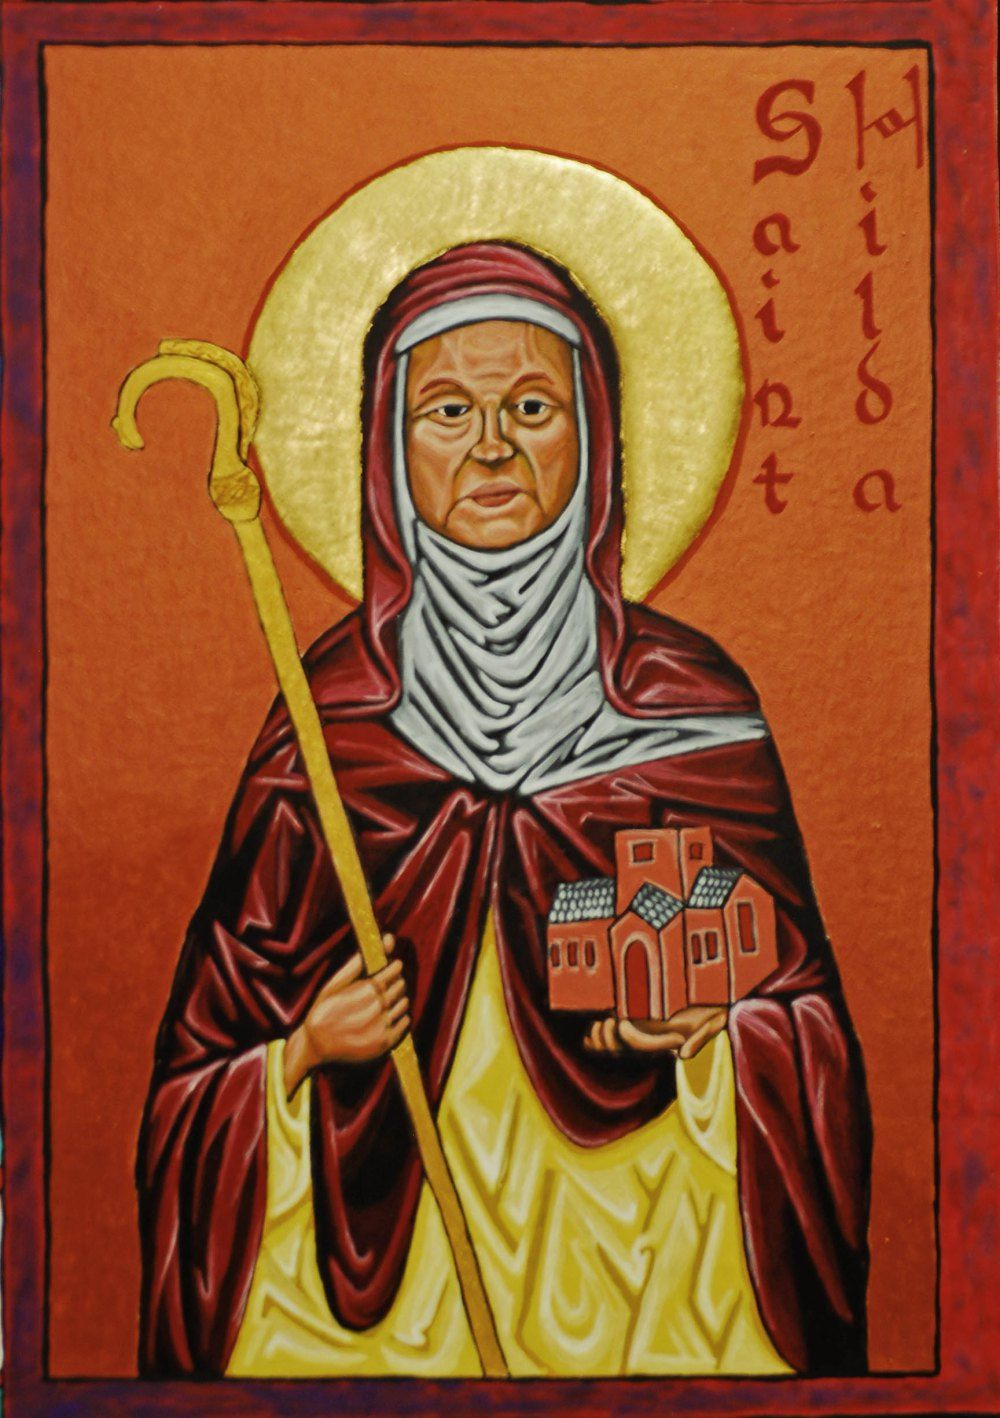 Br. Kenneth Holsey, OPC, sent us his icon of Hilda today, to be a blessing for us.